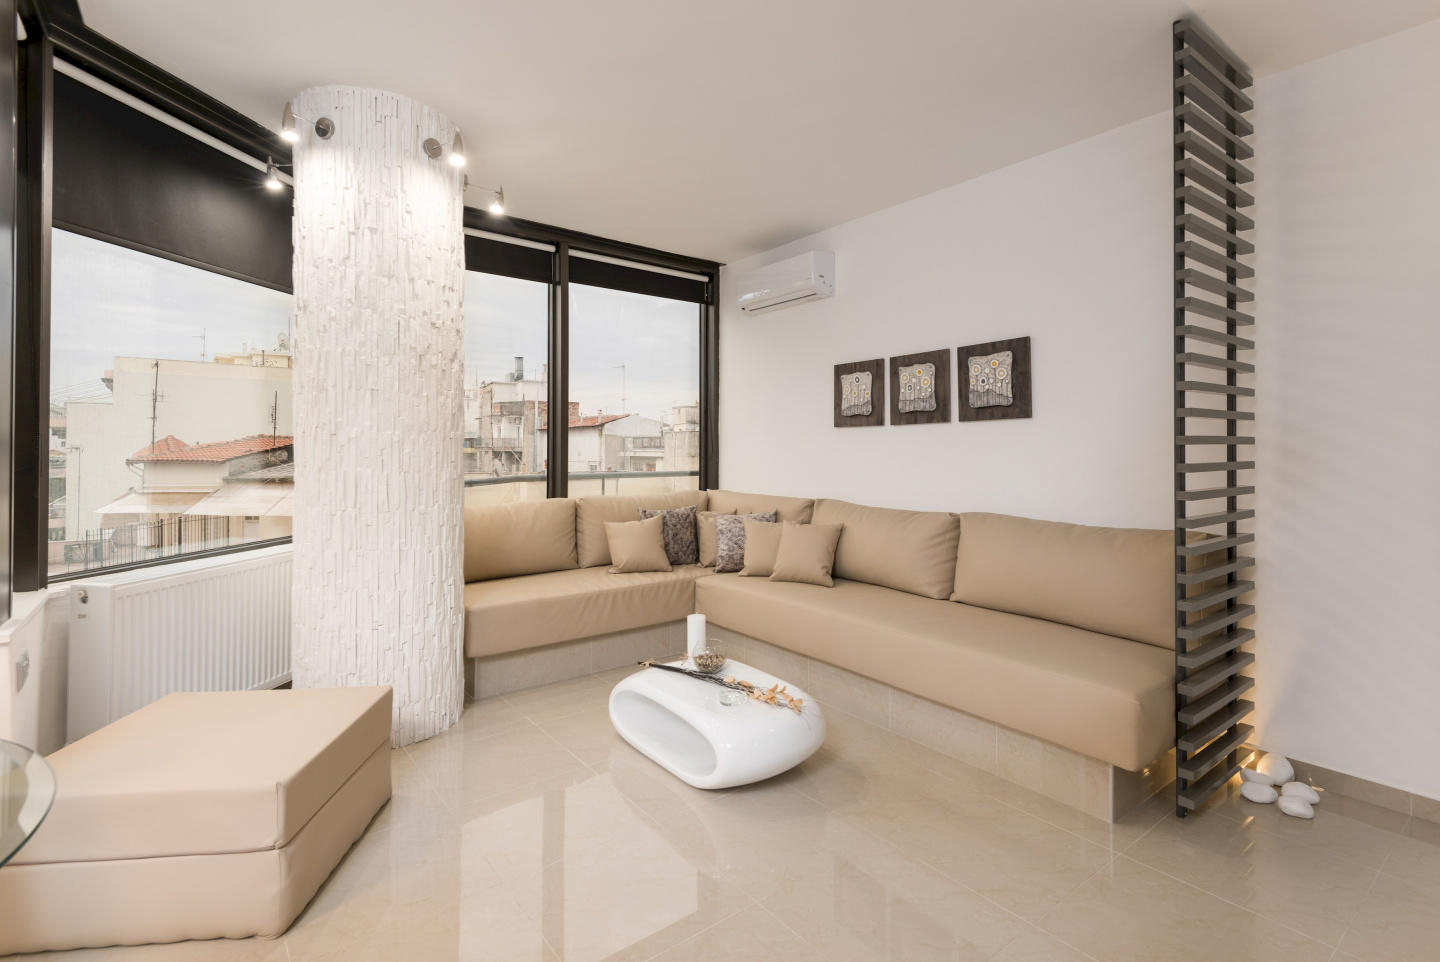 Cozy apartment in the center of Thessaloniki wi... Slide-2